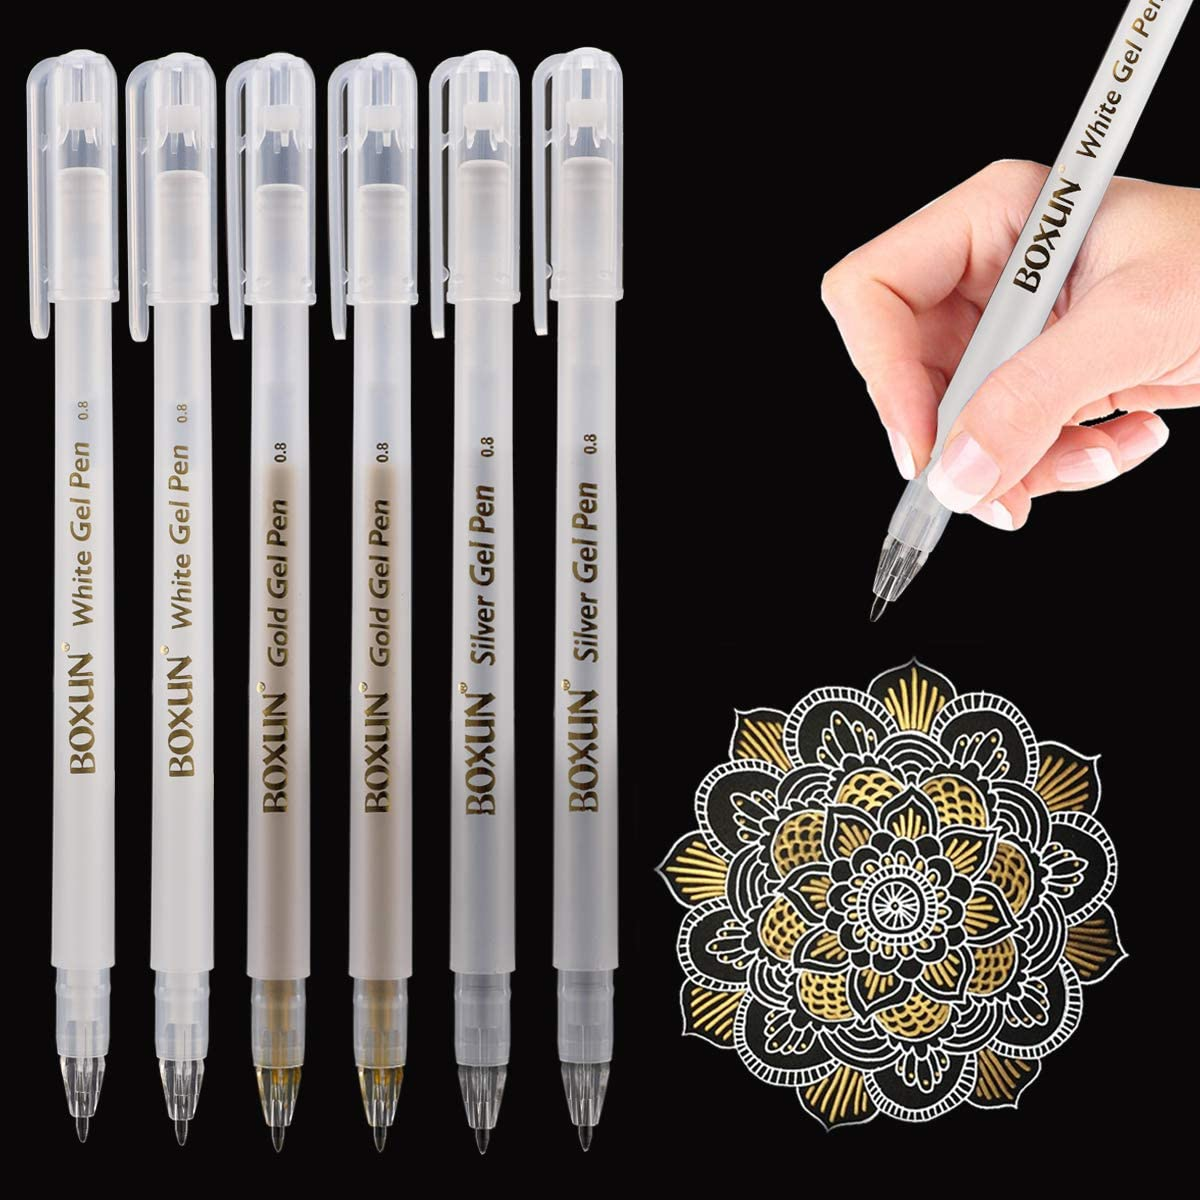 6 Gel Ink Pens 3 Gold And 3 Silver Free Delivery